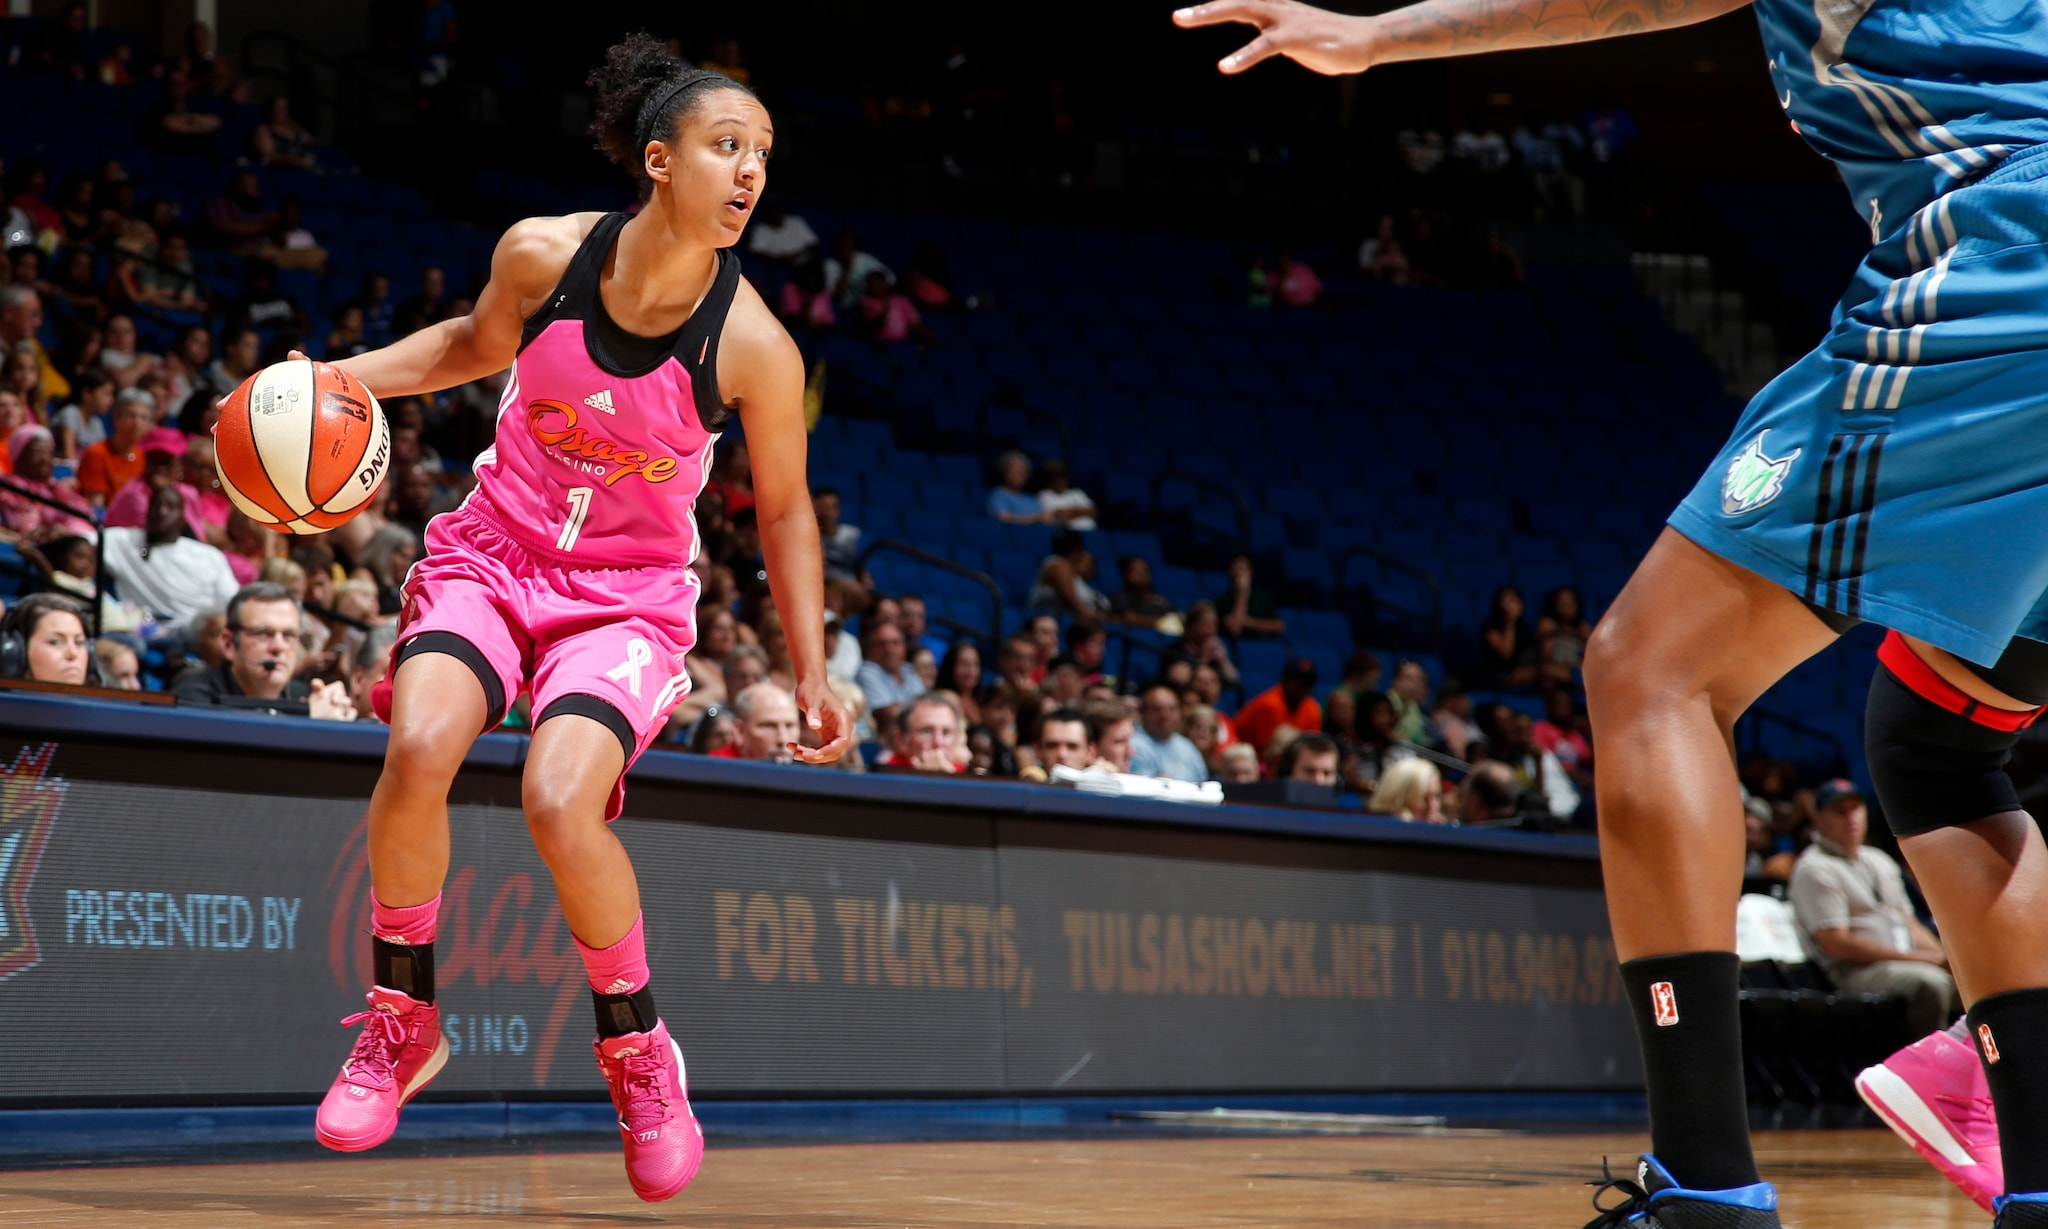 Shock forward Brianna Kiesel was held scoreless in just six minutes of playing time in the Shock's 86-80 loss to the Lynx.